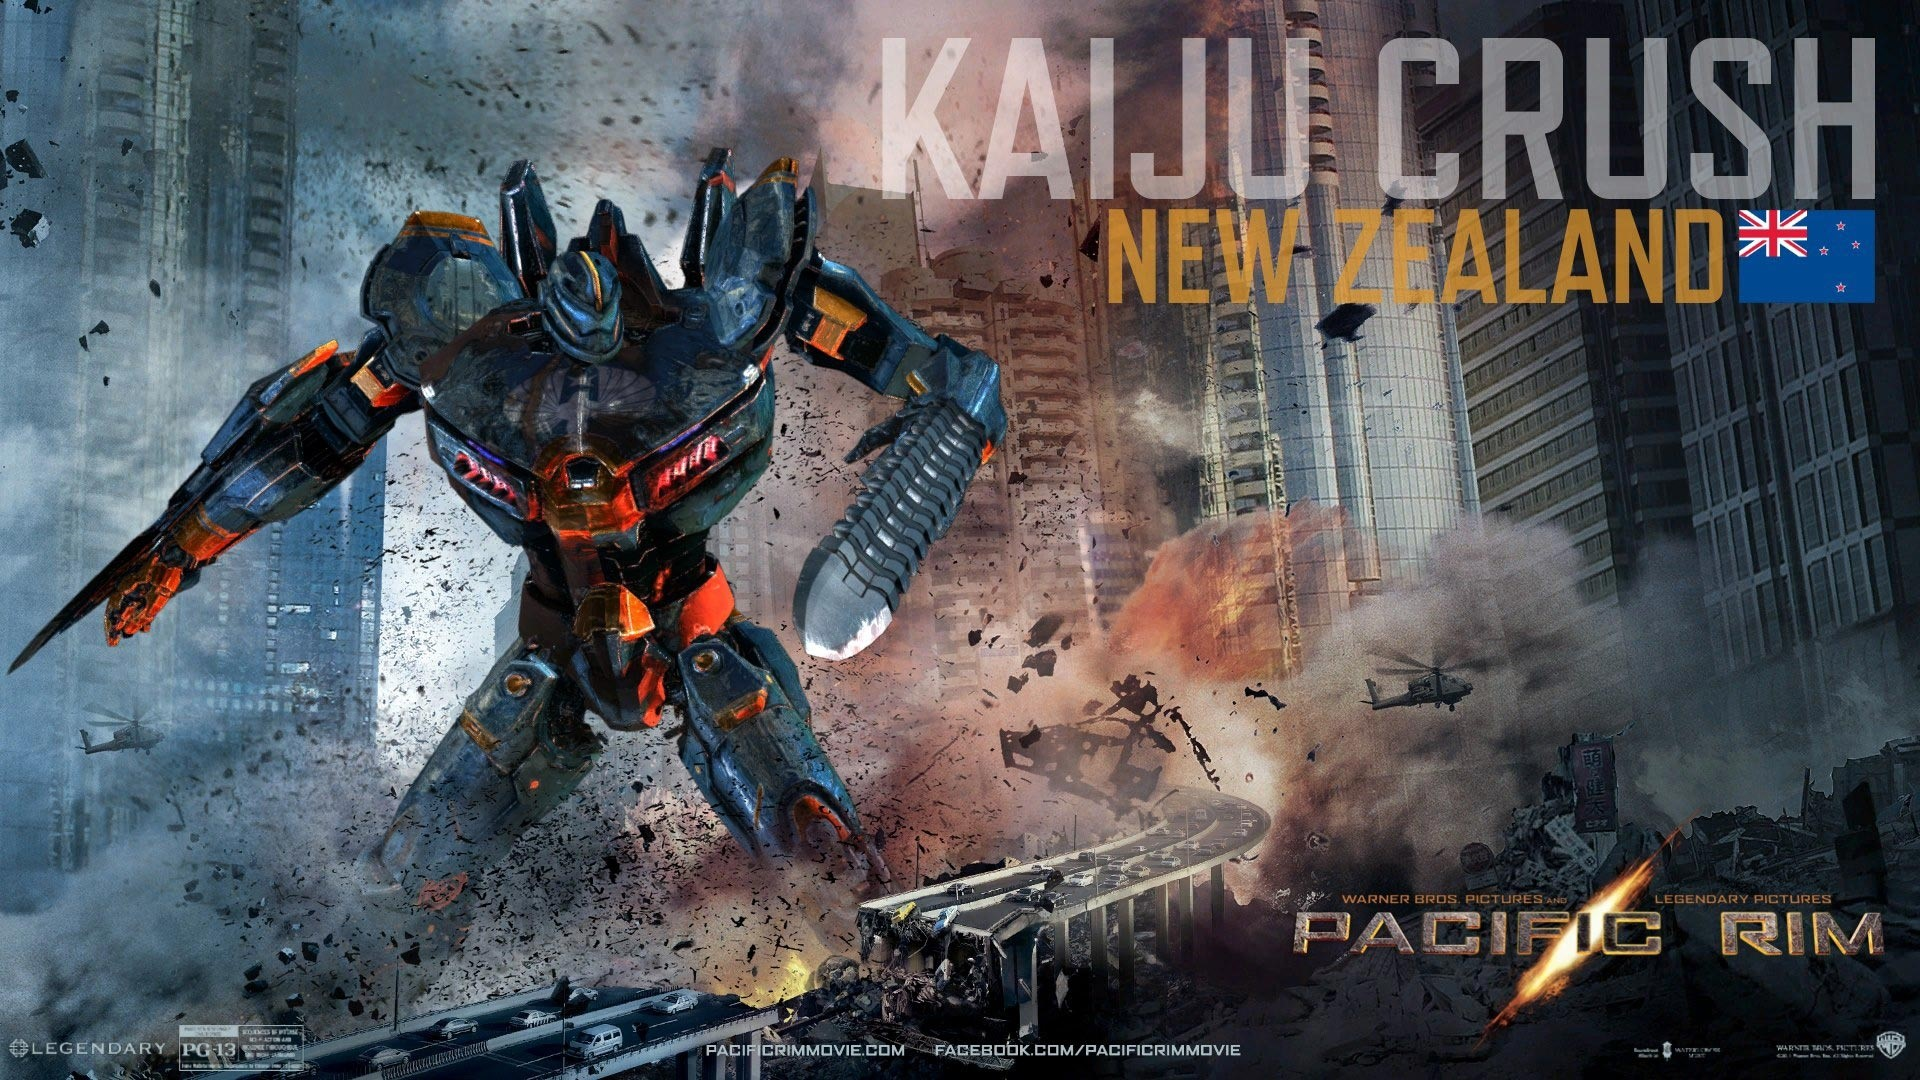 Wallpaper Kaiju crush en Titanes del pacifico Images